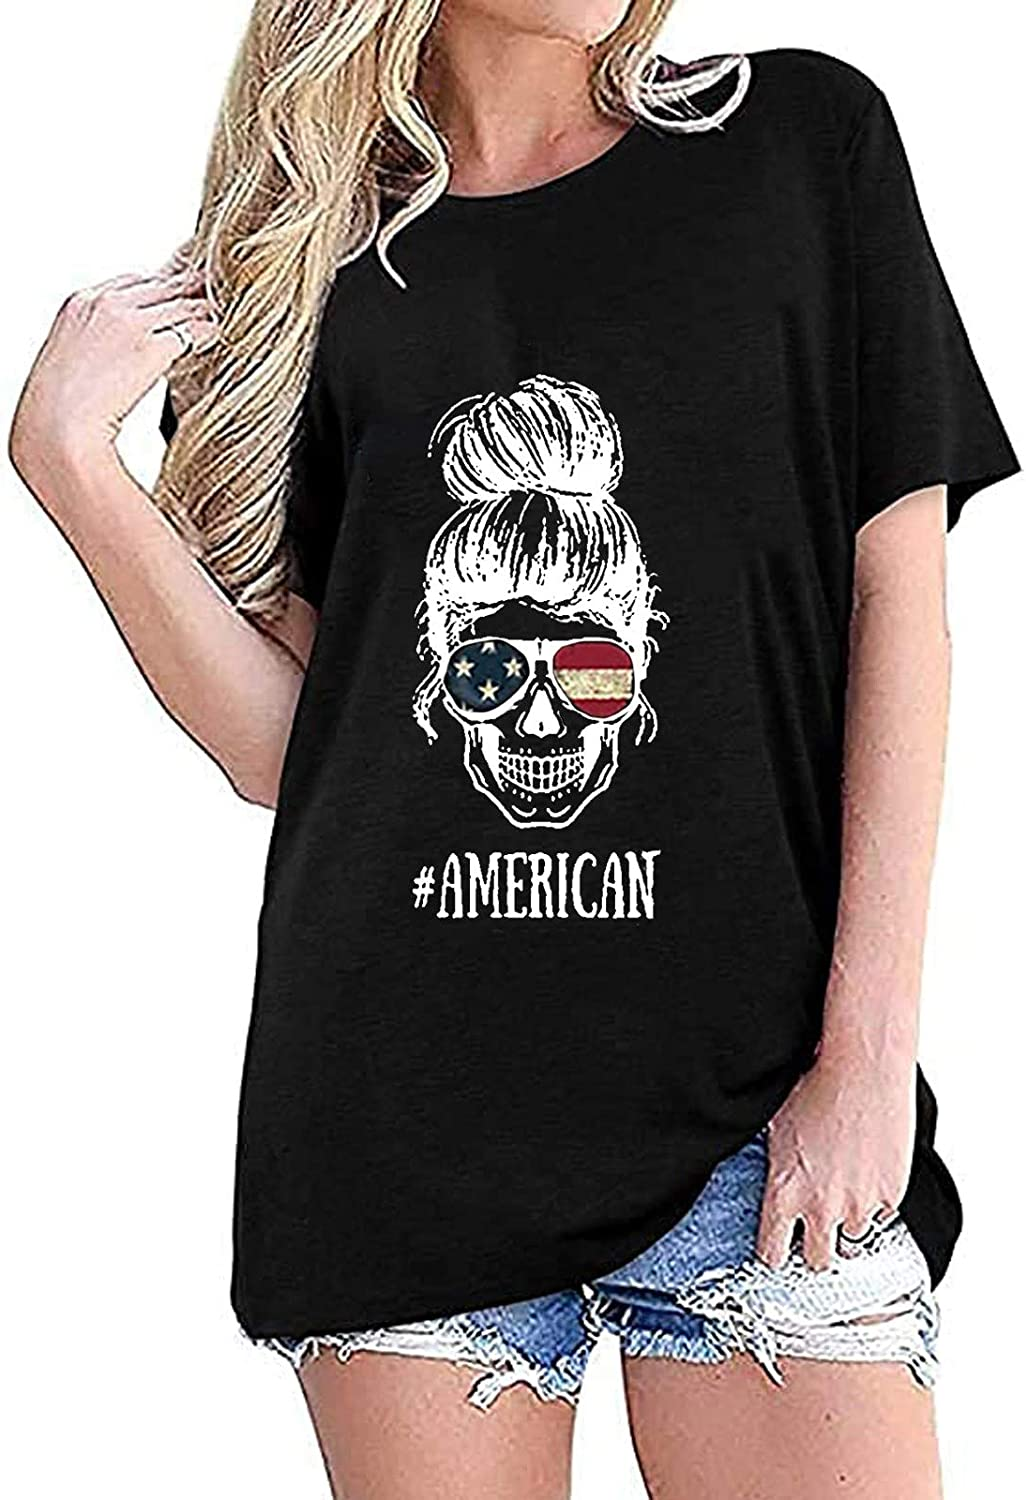 ORT July 4th Shirt for Women,Summer Tops Crew Neck Flag Printed Independence Day Workout Tops Casual T-Shirt Tunic Tops